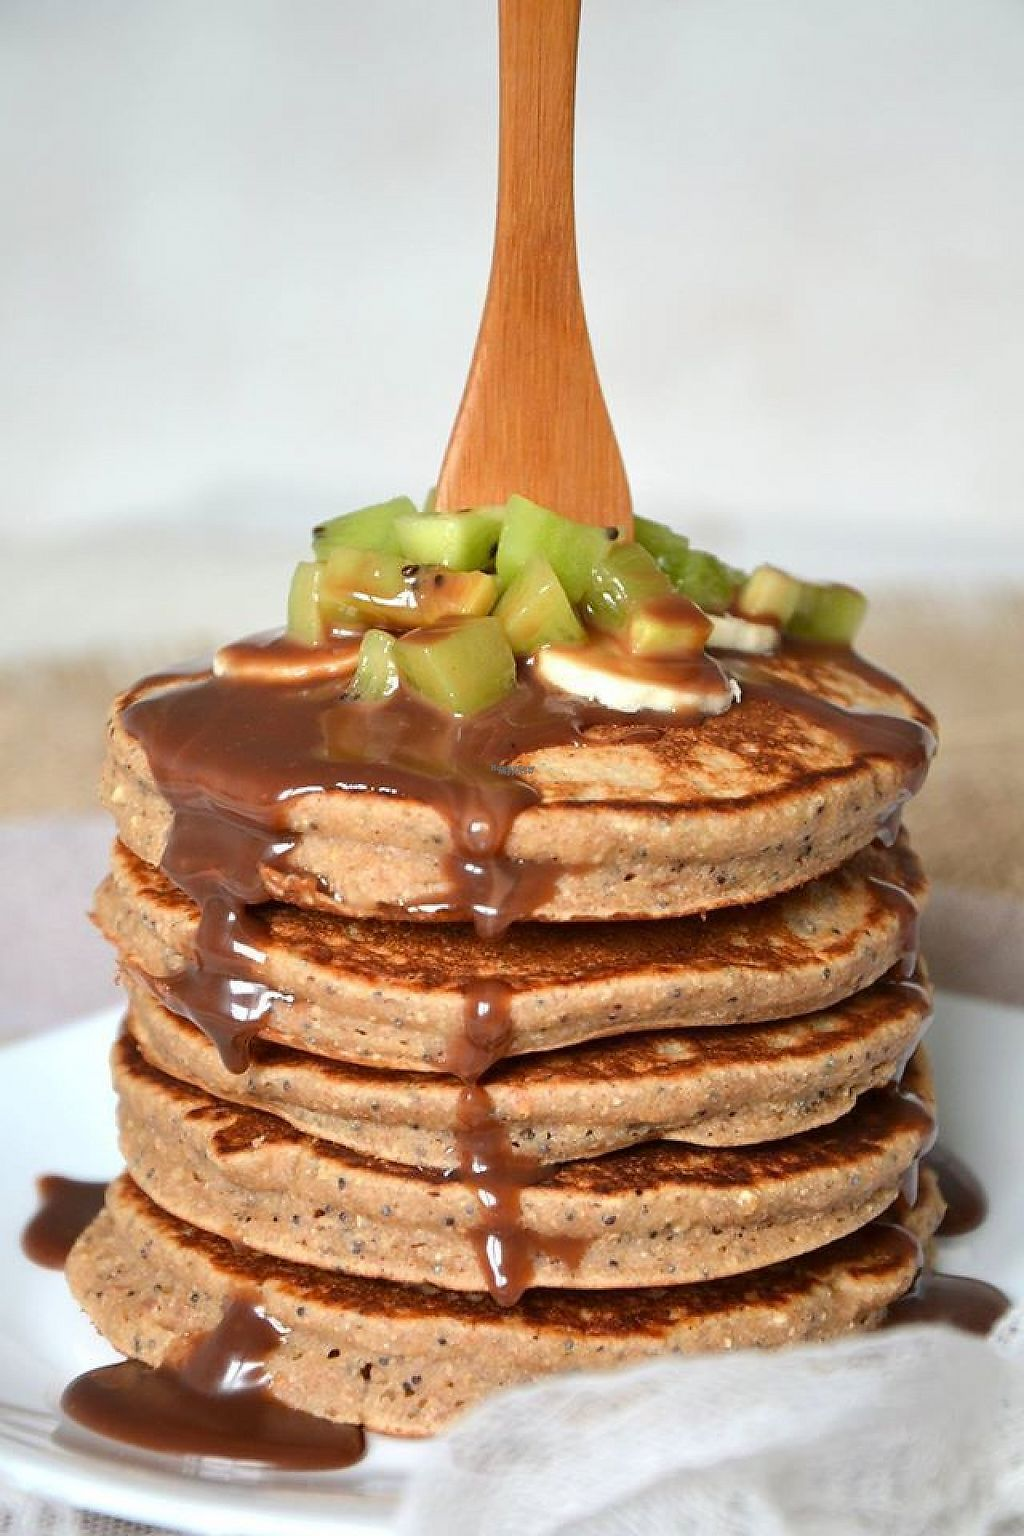 """Photo of La Vie Claire - Republique  by <a href=""""/members/profile/community"""">community</a> <br/>vegan hazelnut pancakes  <br/> February 4, 2017  - <a href='/contact/abuse/image/24327/221794'>Report</a>"""